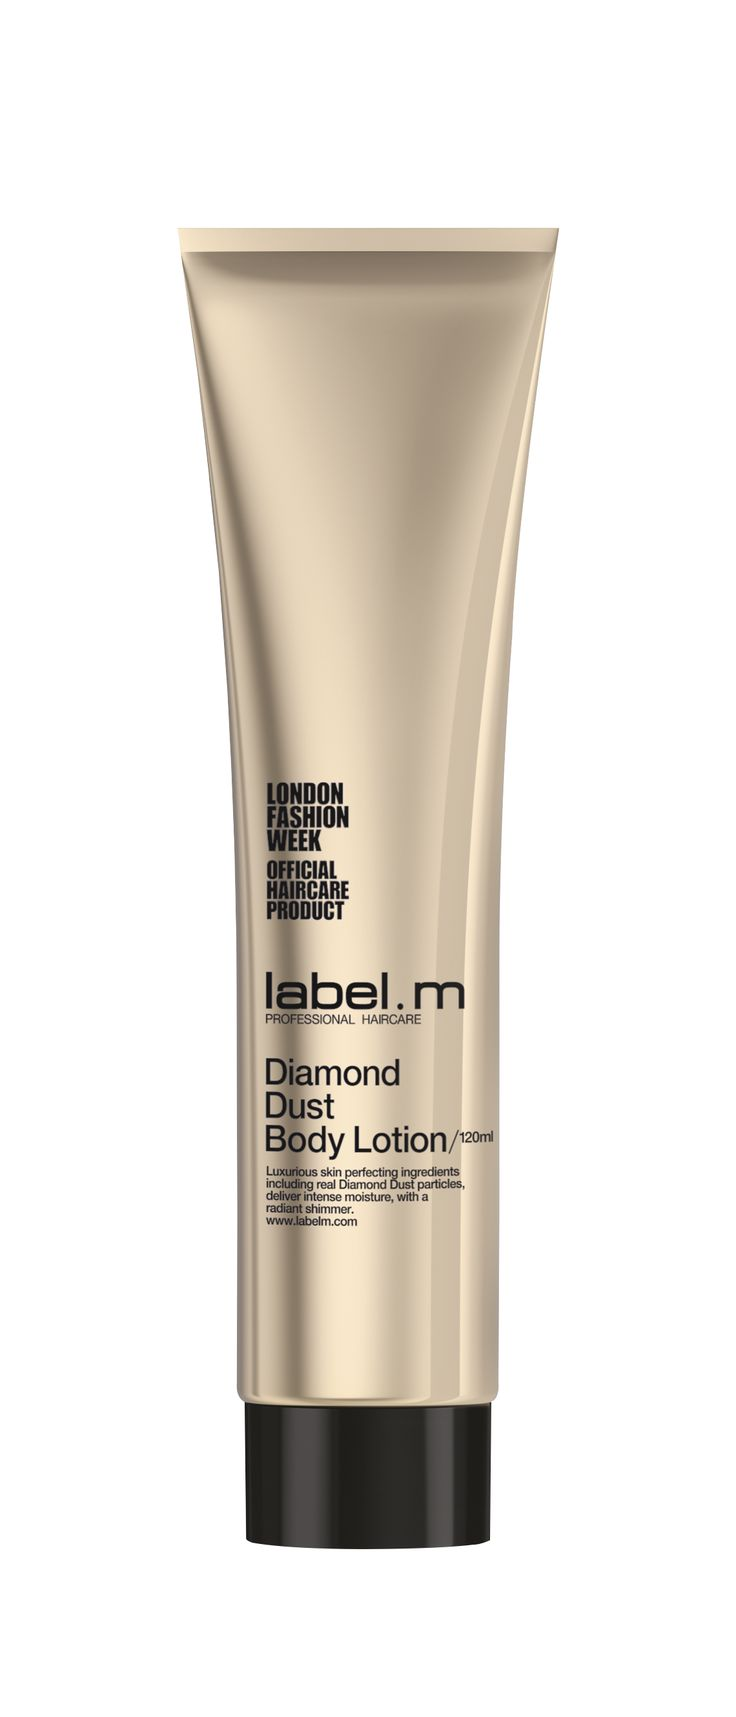 label.m Diamond Dust Body Lotion Luxurious and skin perfecting Diamond Dust particles deliver intense moisture and silkiness leaving skin glowing with a radiant diamond shimmer.